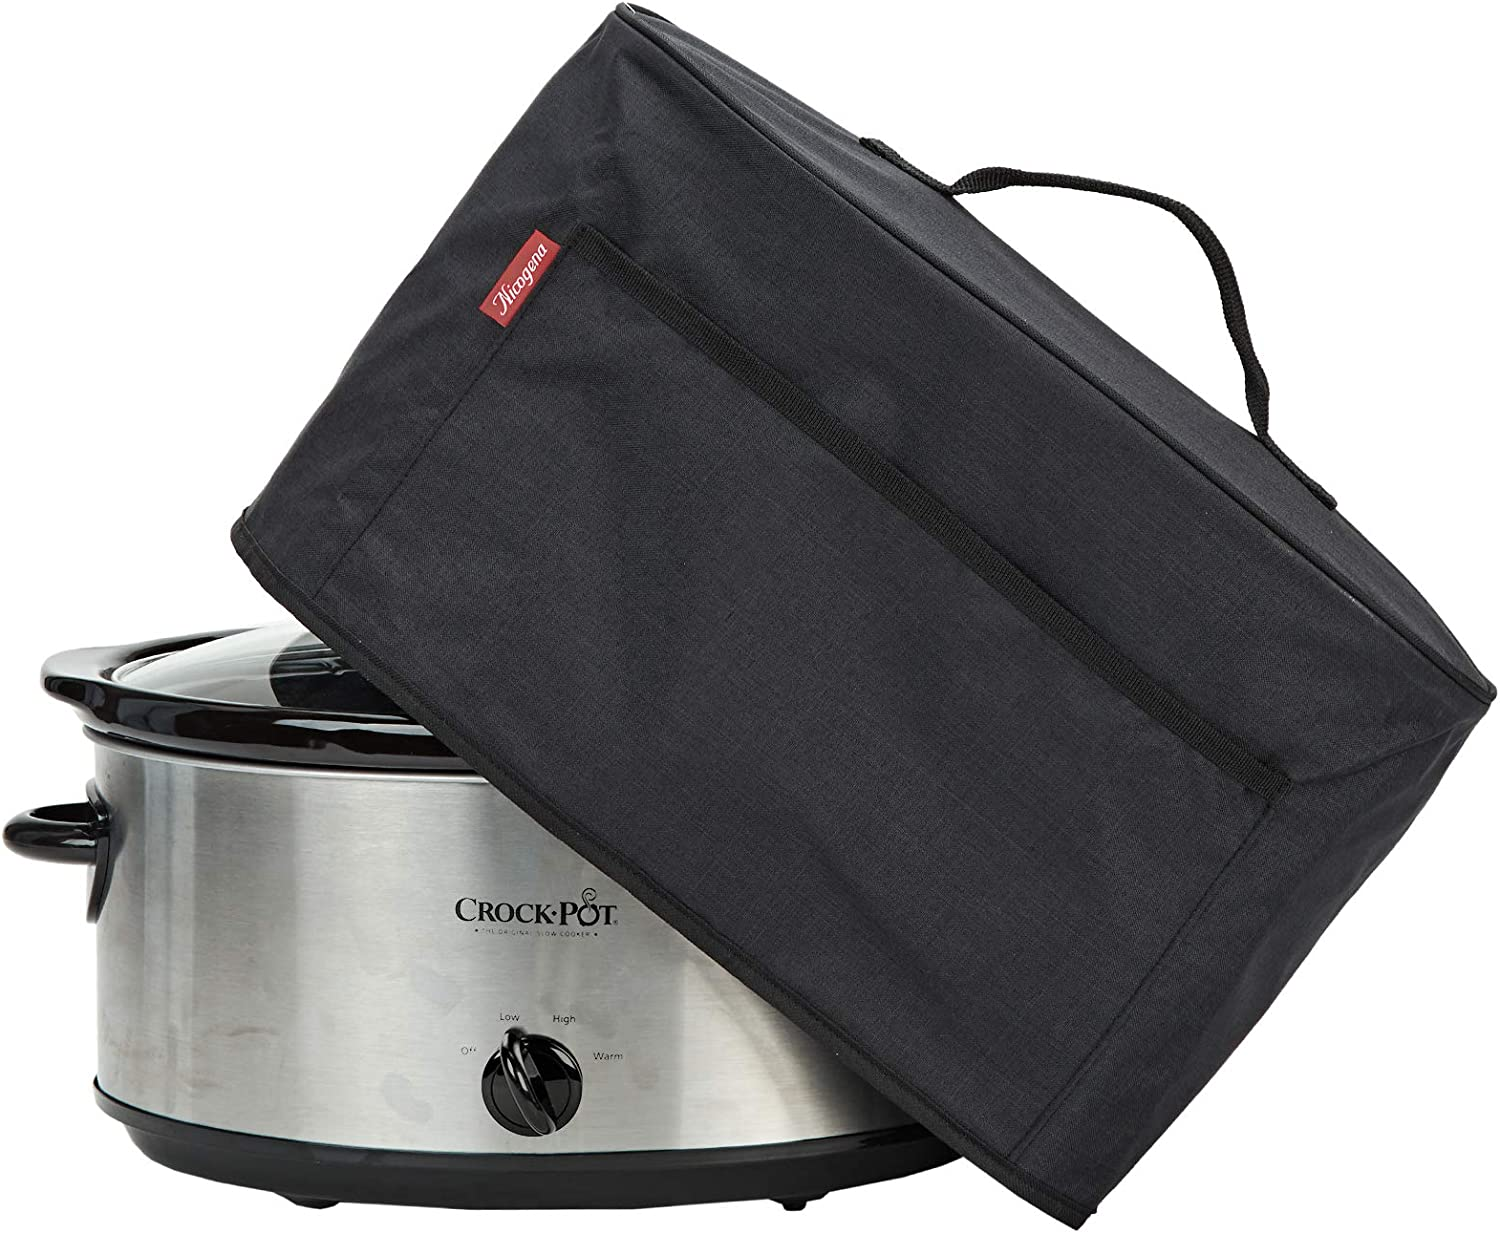 NICOGENA Slow Cooker Dust Cover with Handle and Front Pocket for Crock Pot 6-8 Quart, Waterproof fabric with Easy to Wipe Lining, Black